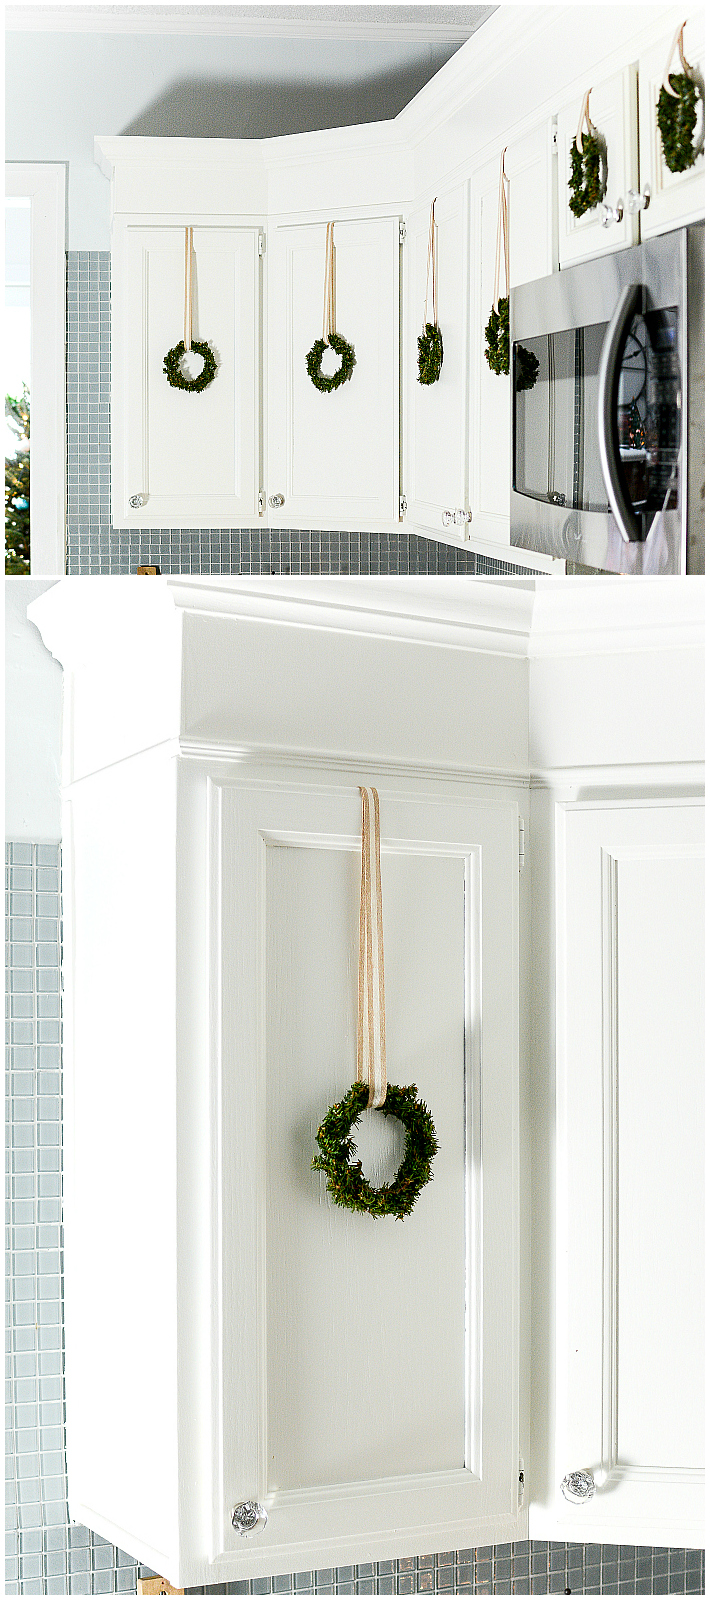 Decorating with Wreaths Indoors - Mini Wreaths on Kitchen Cabinets